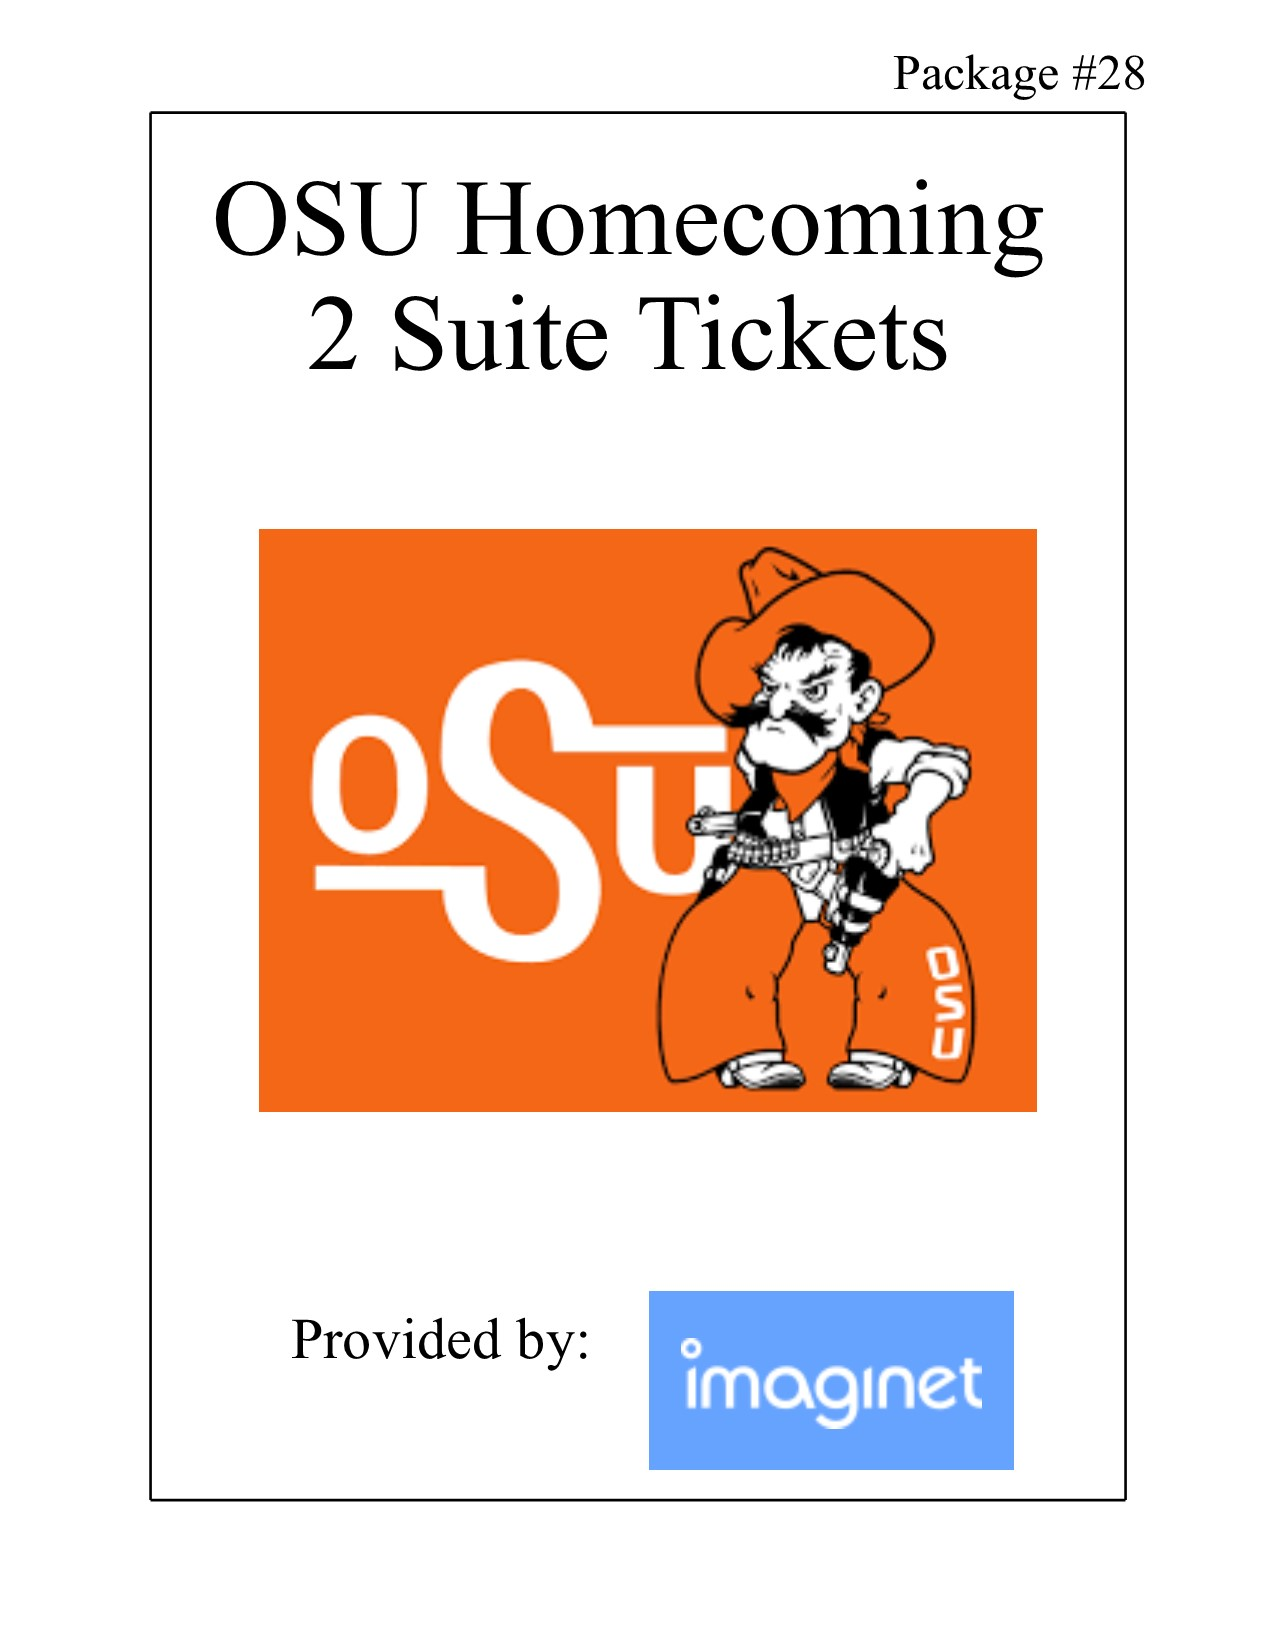 OSU homecoming.jpg